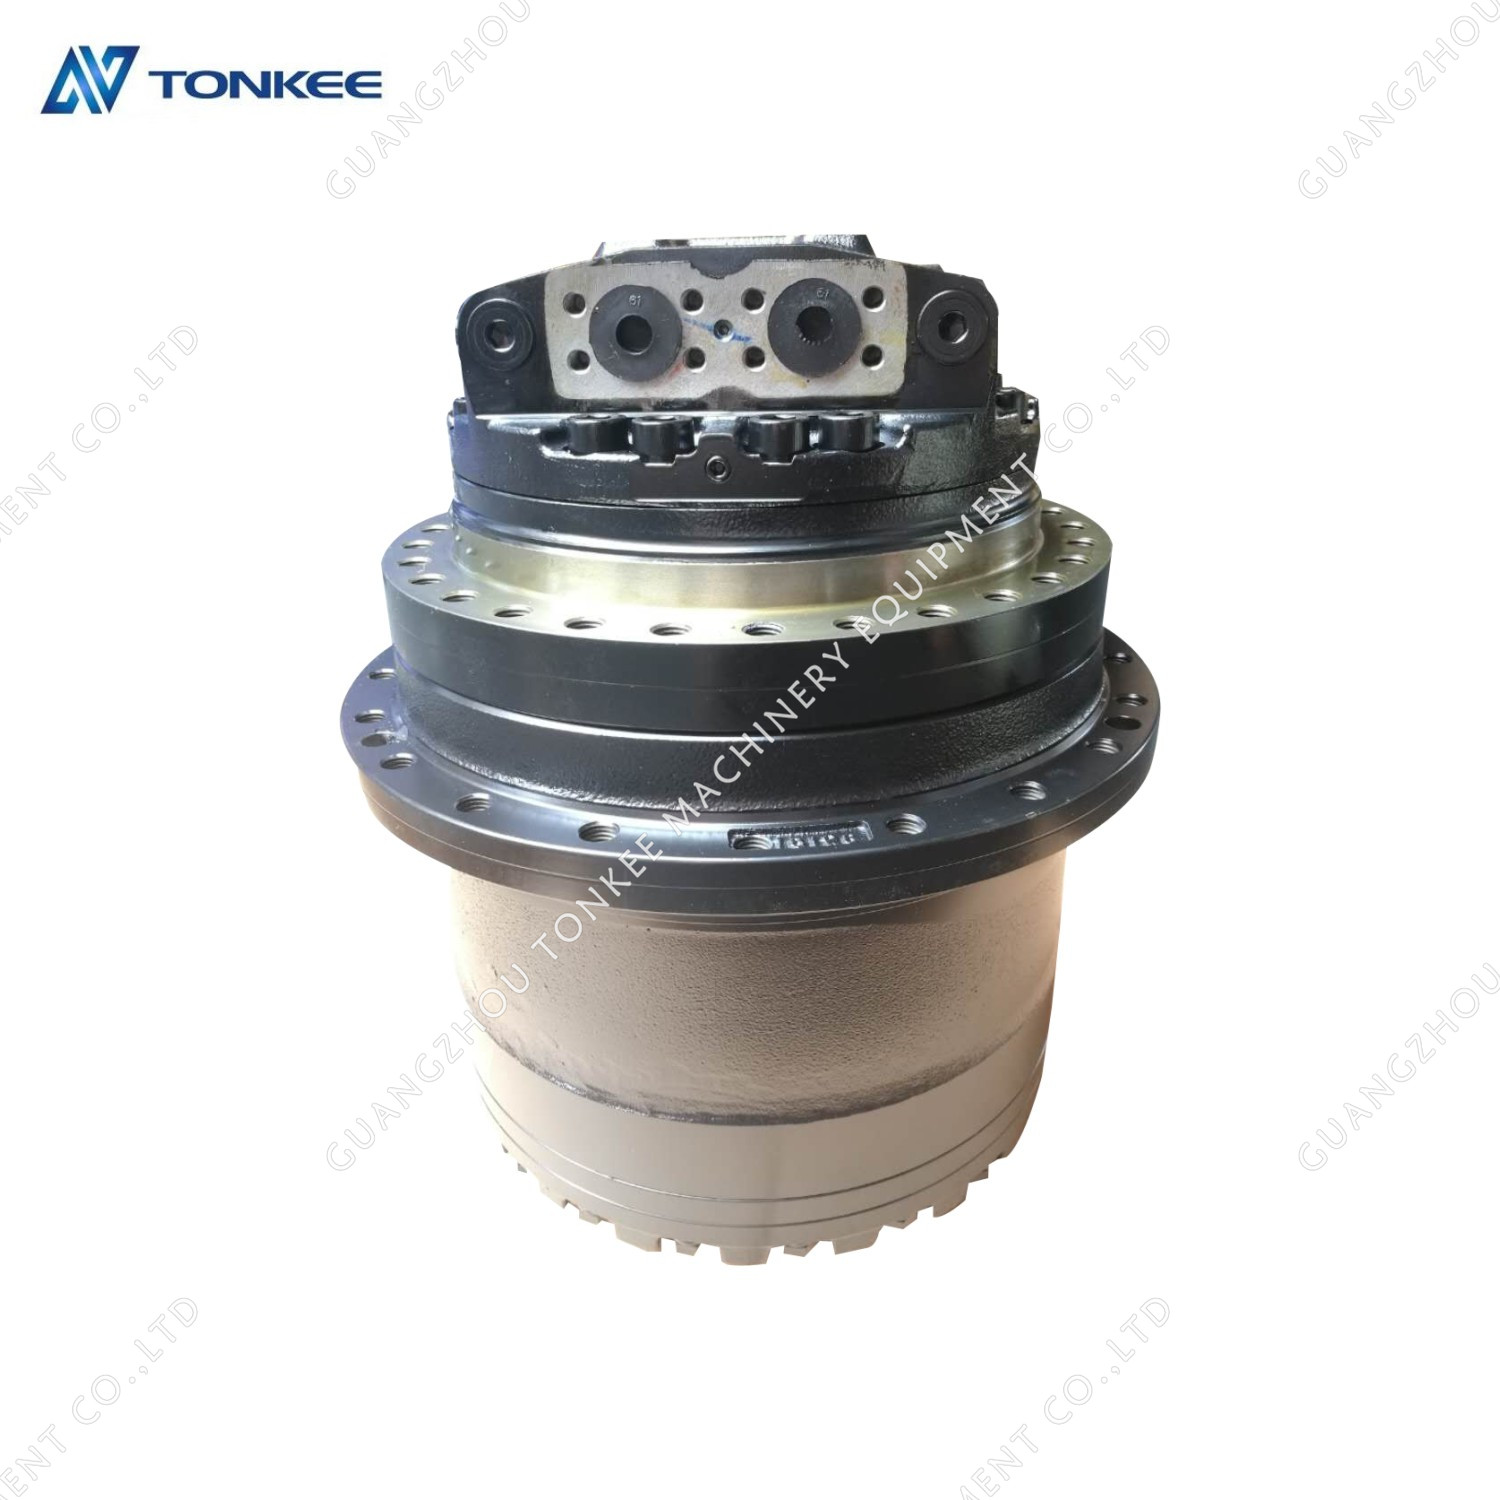 Construction Machinery Parts New 67684001 final drive group R160LC R160 travel motor assy for excavator